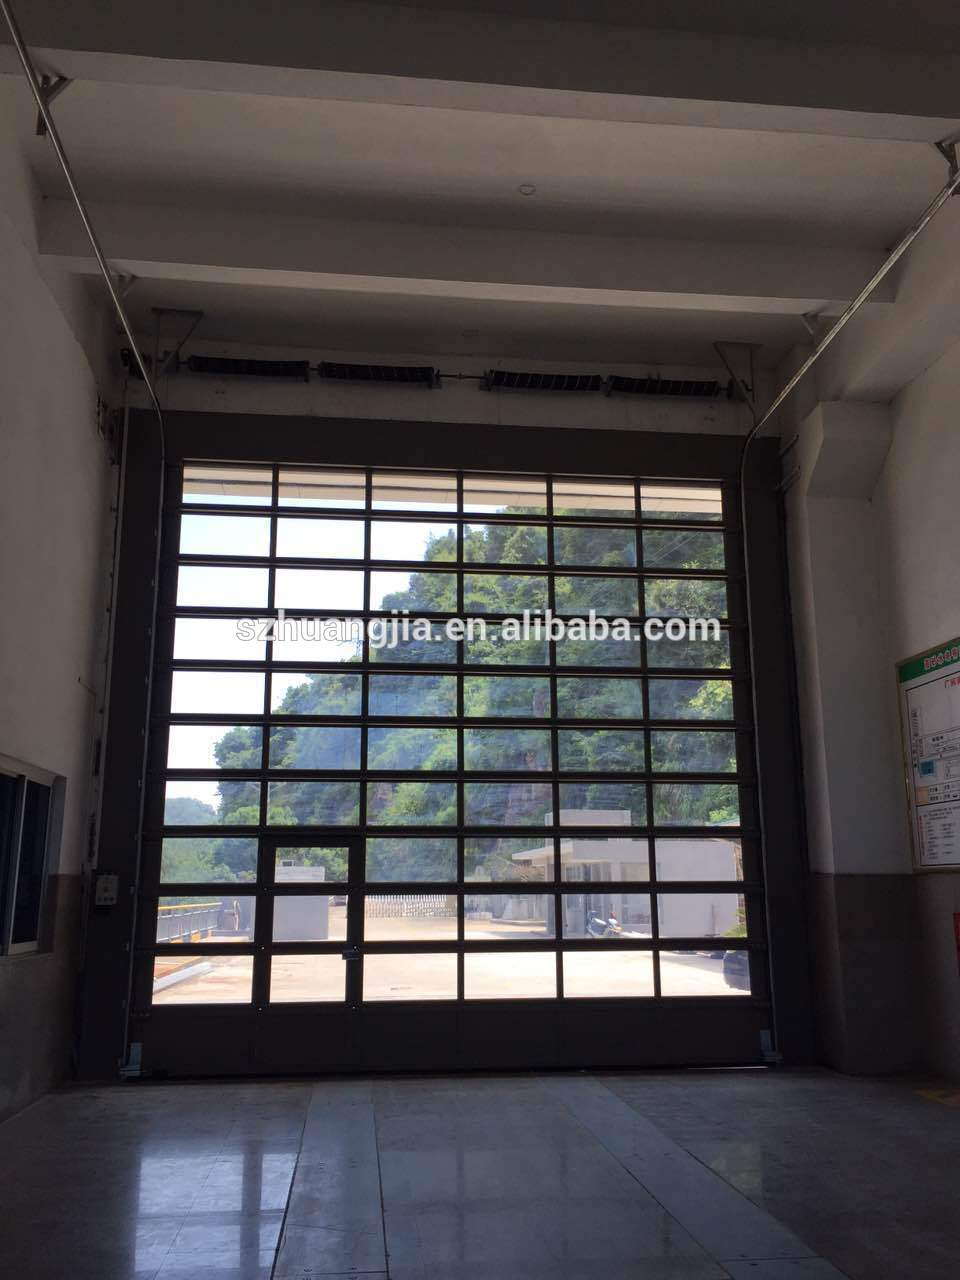 Commercial industrial large heavy duty wholesale motorized for Oversized garage door